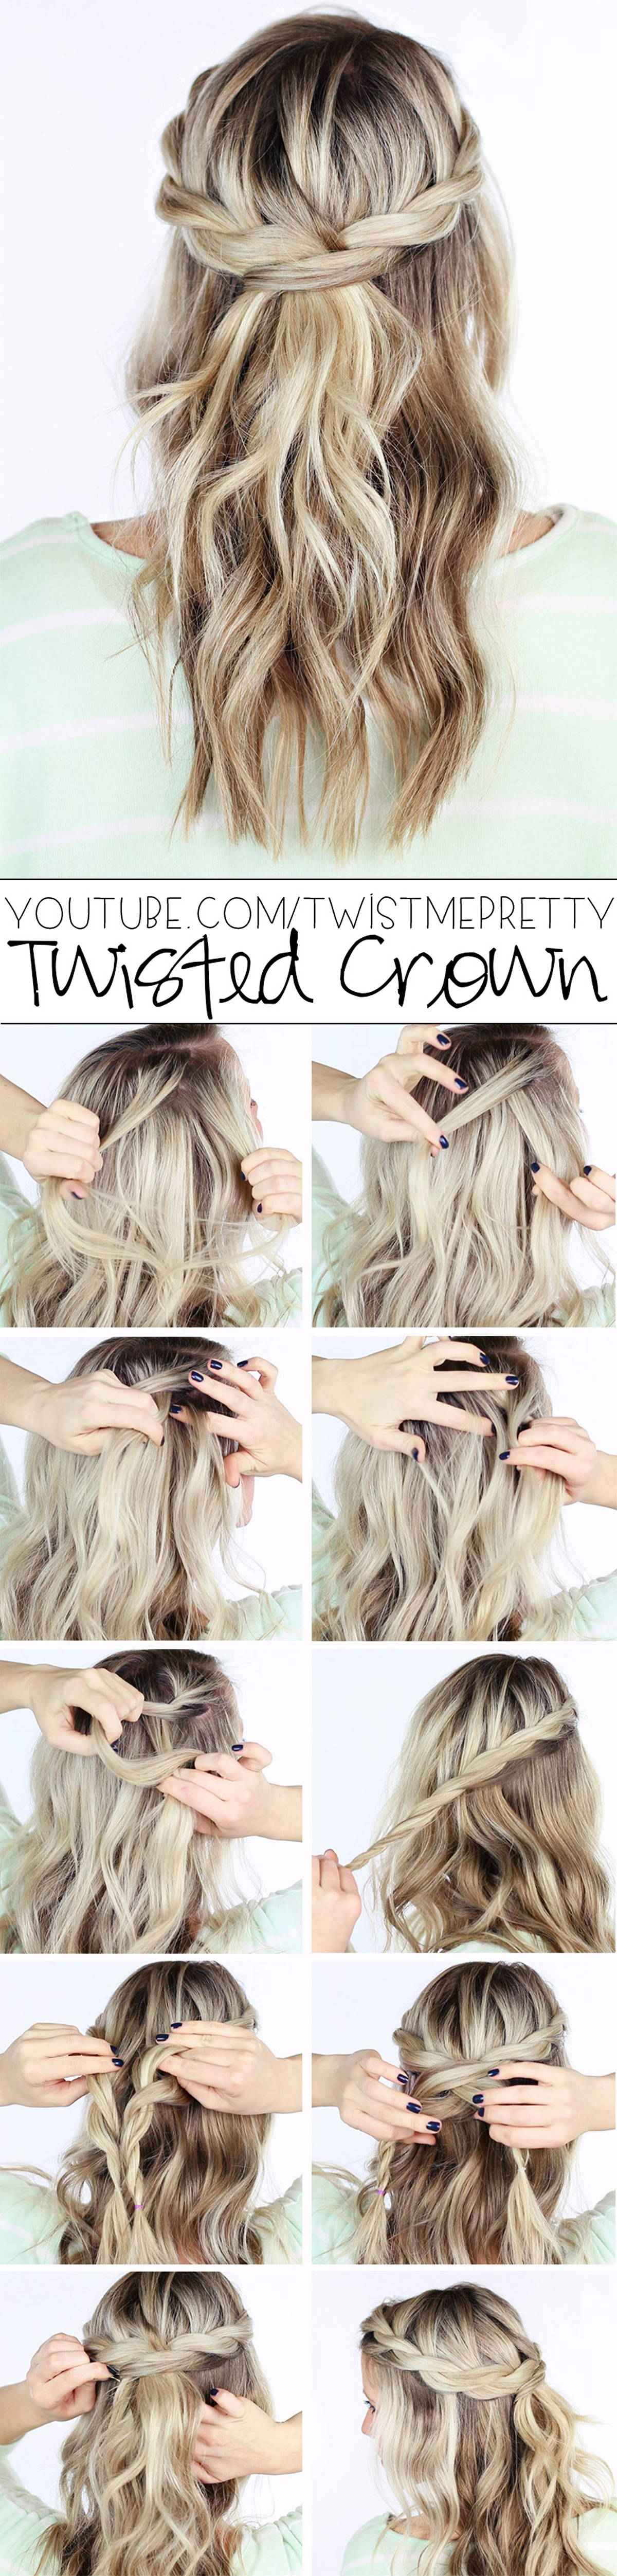 Hairstyles diy and tutorial for all hair lengths 016 | fashion